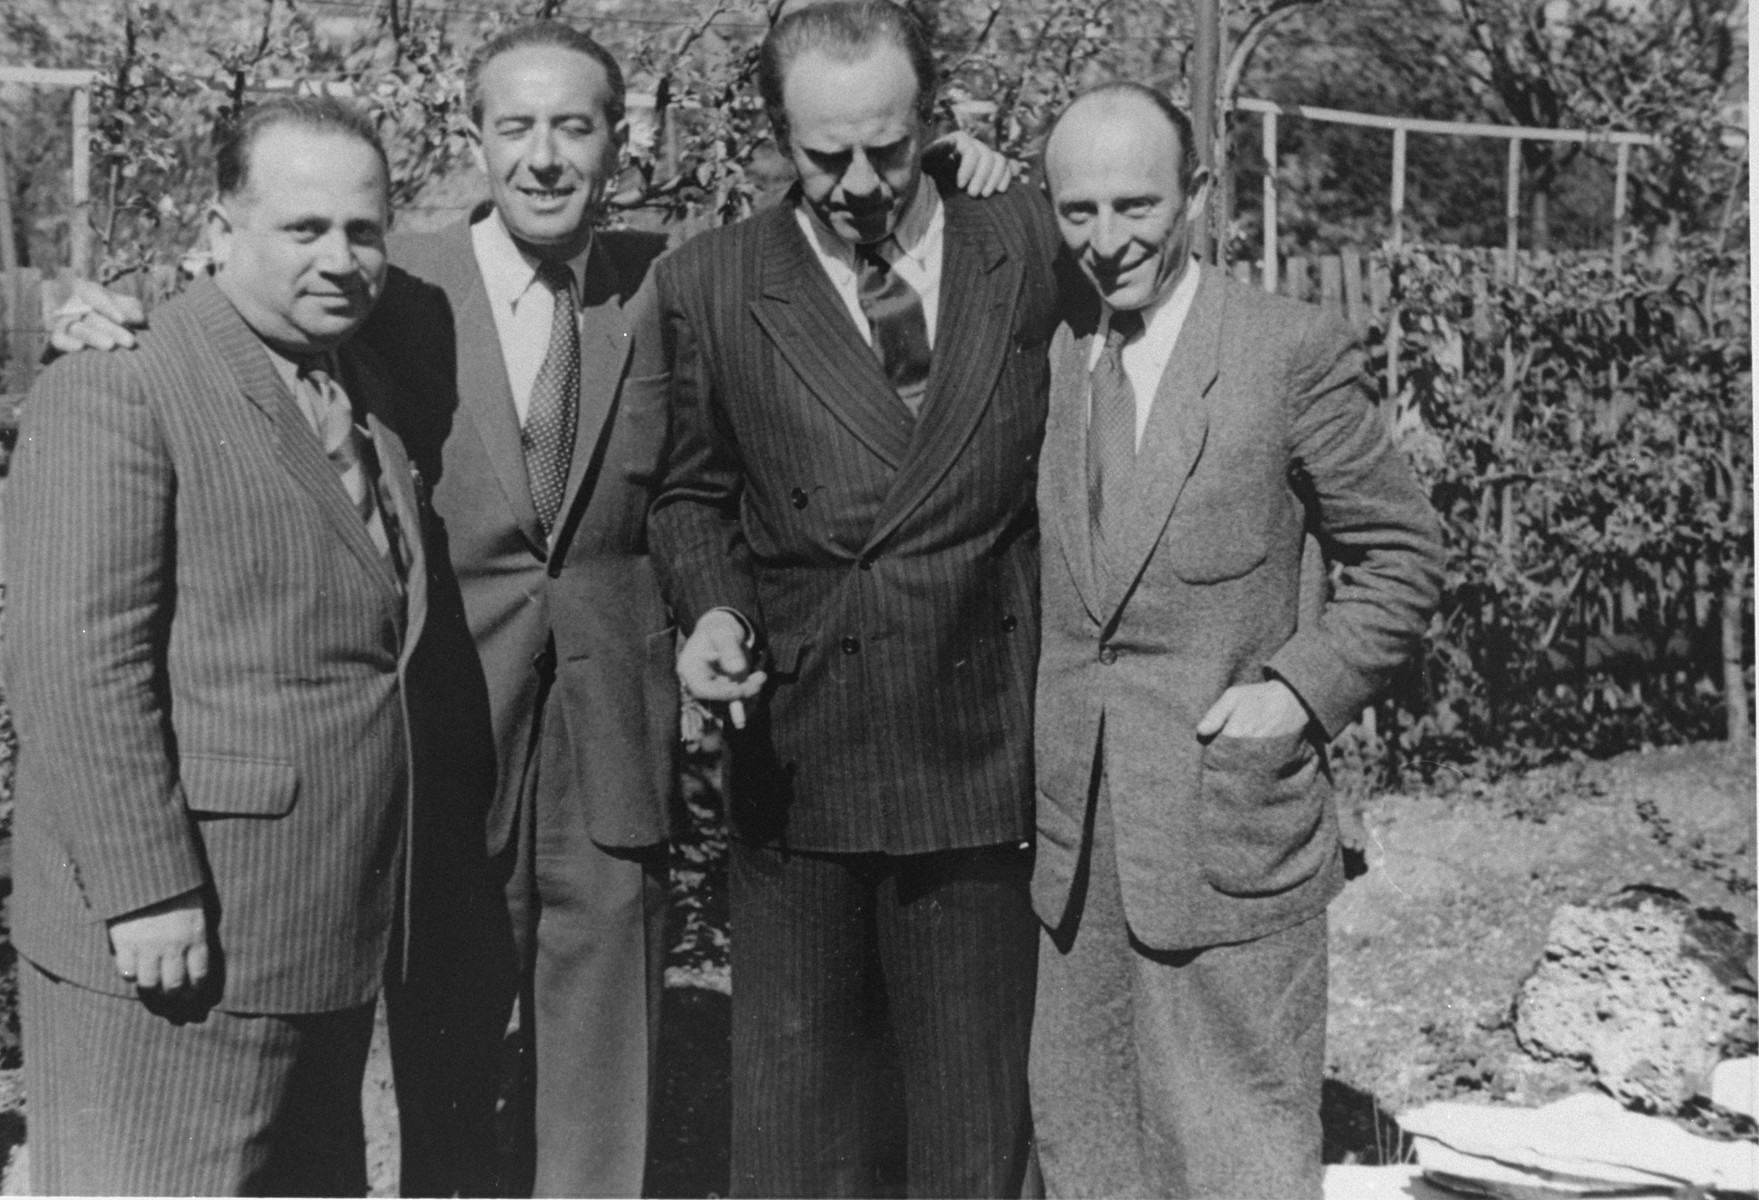 Oskar Schindler at a reunion in Munich, Germany in 1946 with Schindler Jew, Herman Kornhauser (1904-1990).